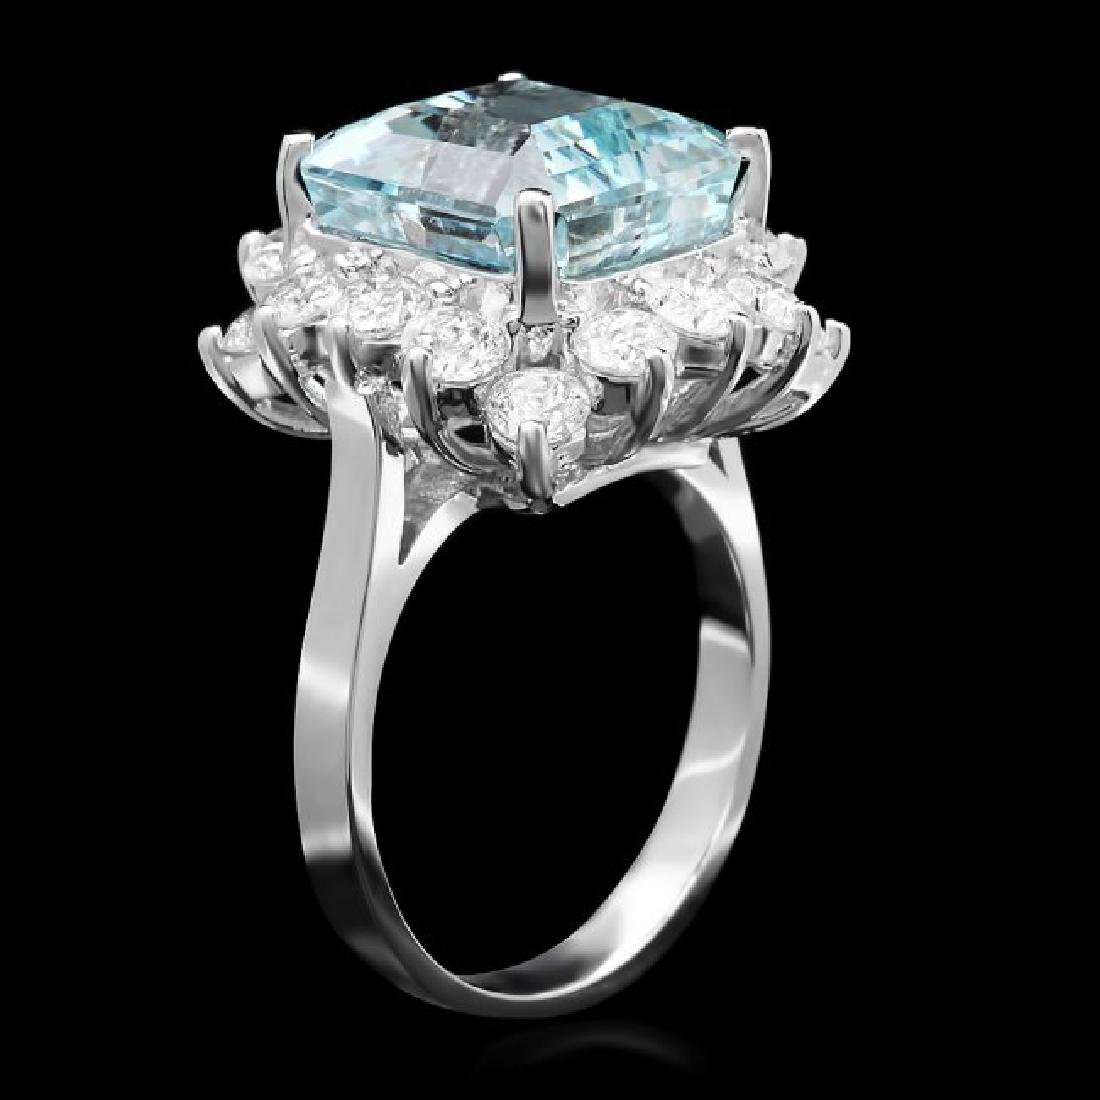 14k White Gold 7.40ct Aquamarine 2ct Diamond Ring - 2